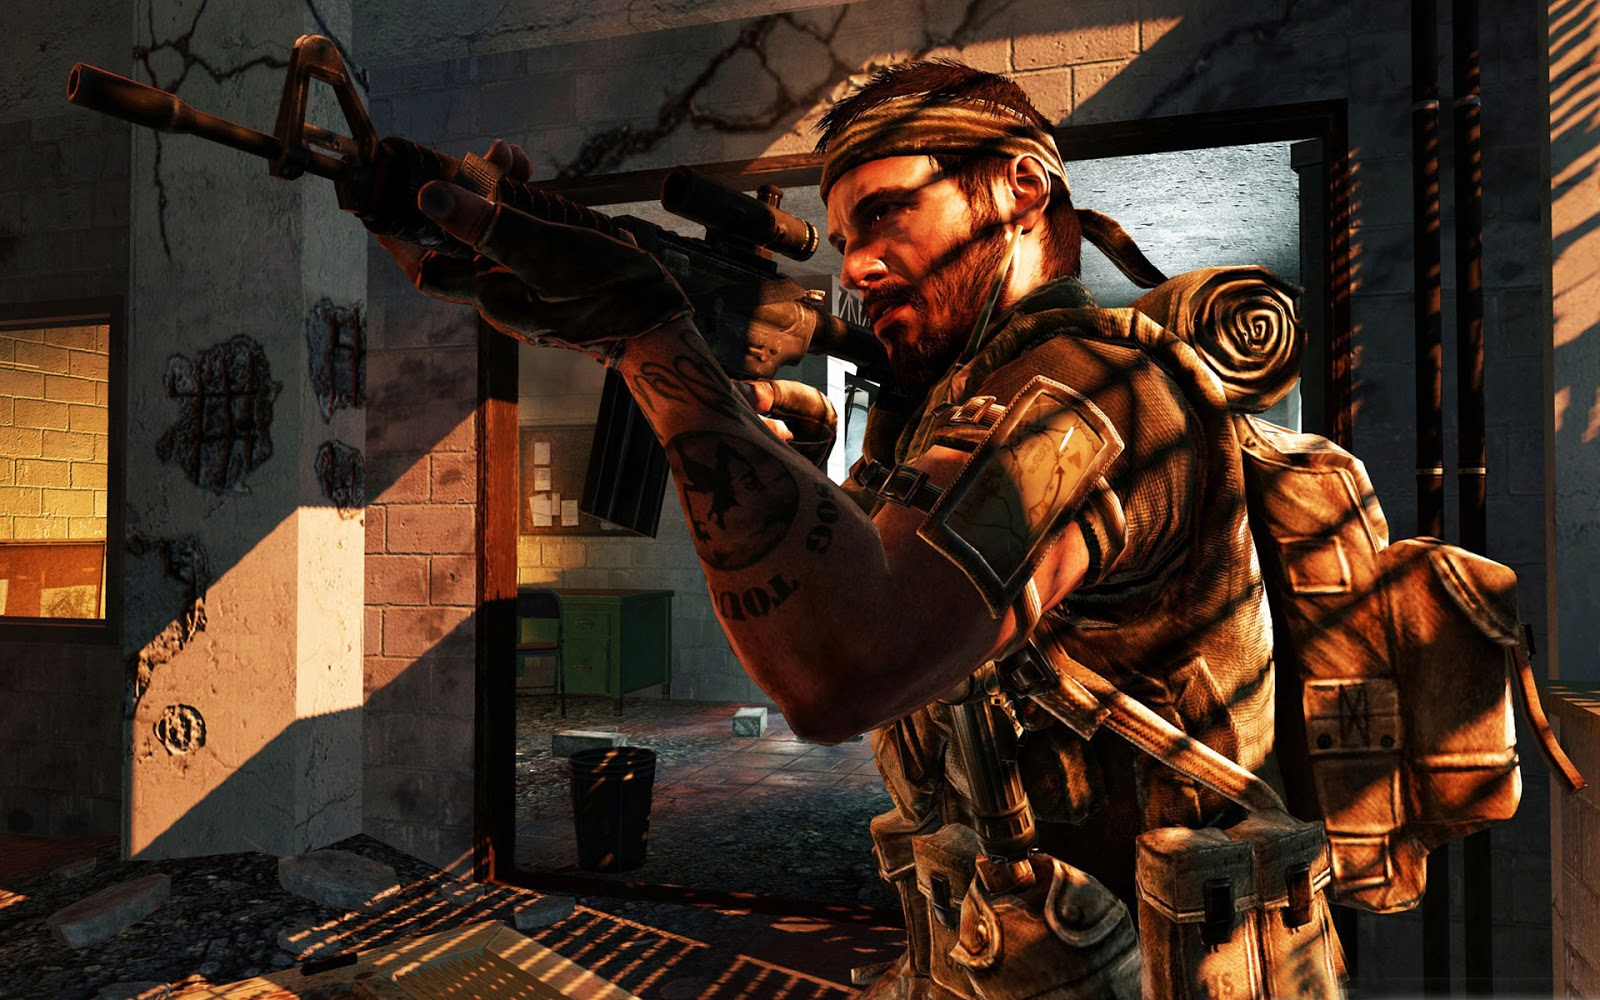 http://4.bp.blogspot.com/-boT4BaVcPCY/UNSpKbwjuEI/AAAAAAAAANk/D_LLUErTx_8/s1600/Call+of+duty+black+ops+hd+wallpapers+(8).jpg